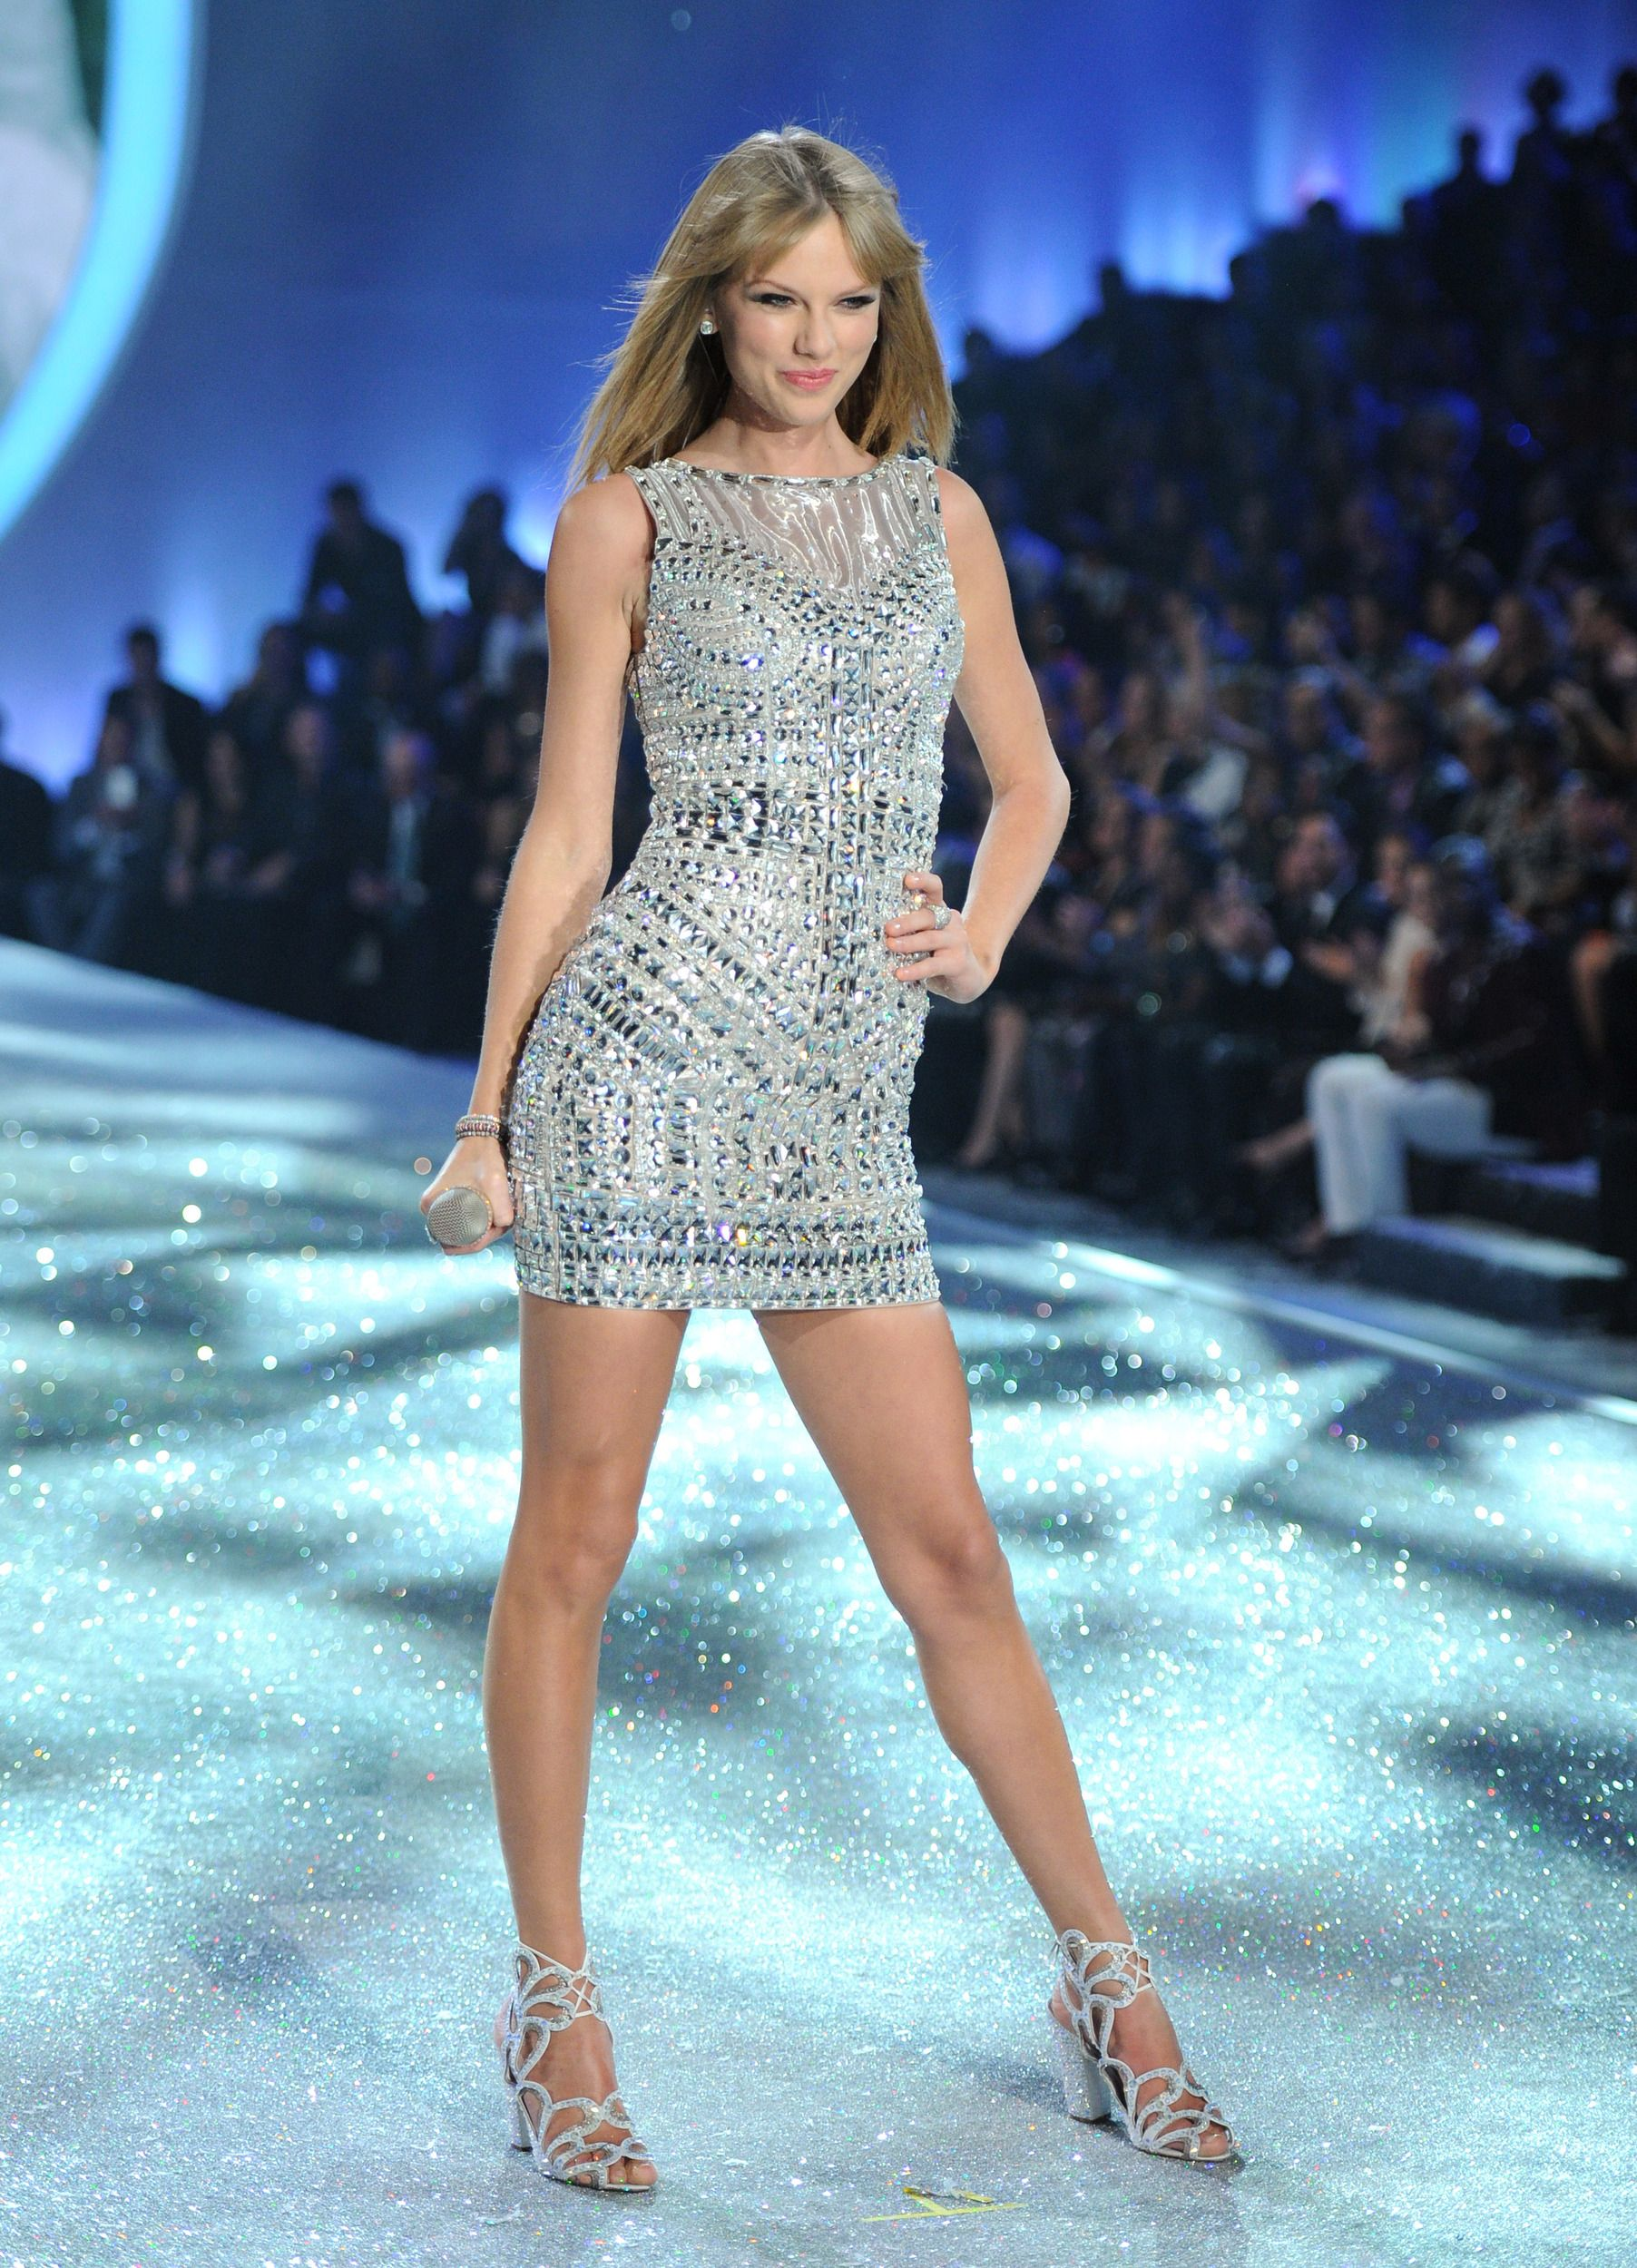 Sparkly Sliver Mini Dress Nicholas Kirkwood Sandals 1 668 Taylor Swift Outfits Taylor Swift Taylor Alison Swift